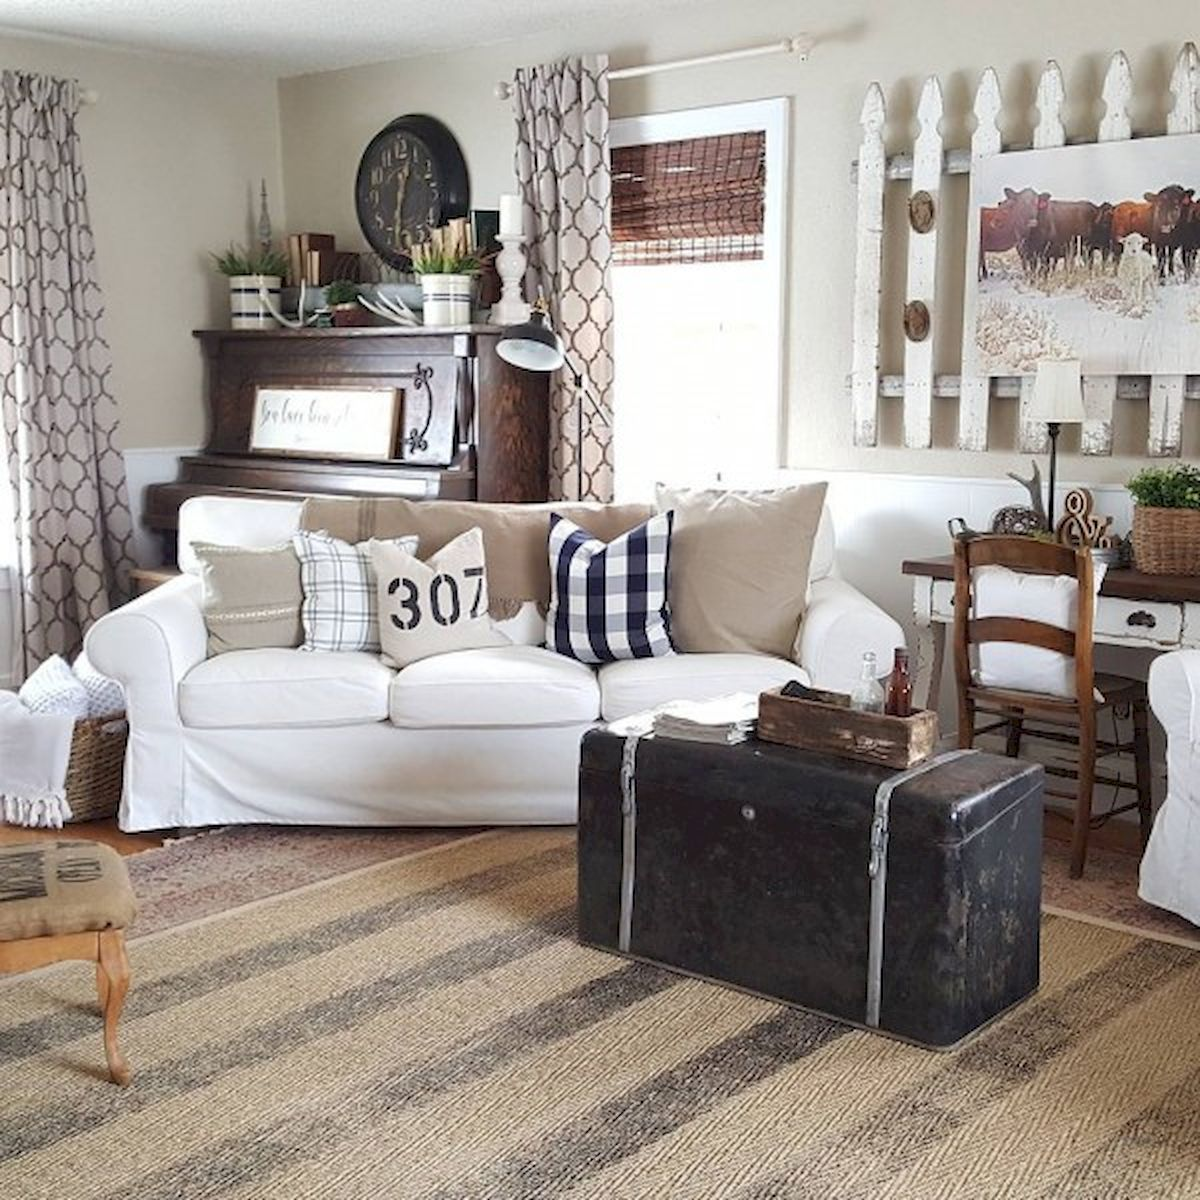 Pin by Tammy Walker on living rooms Rustic farmhouse